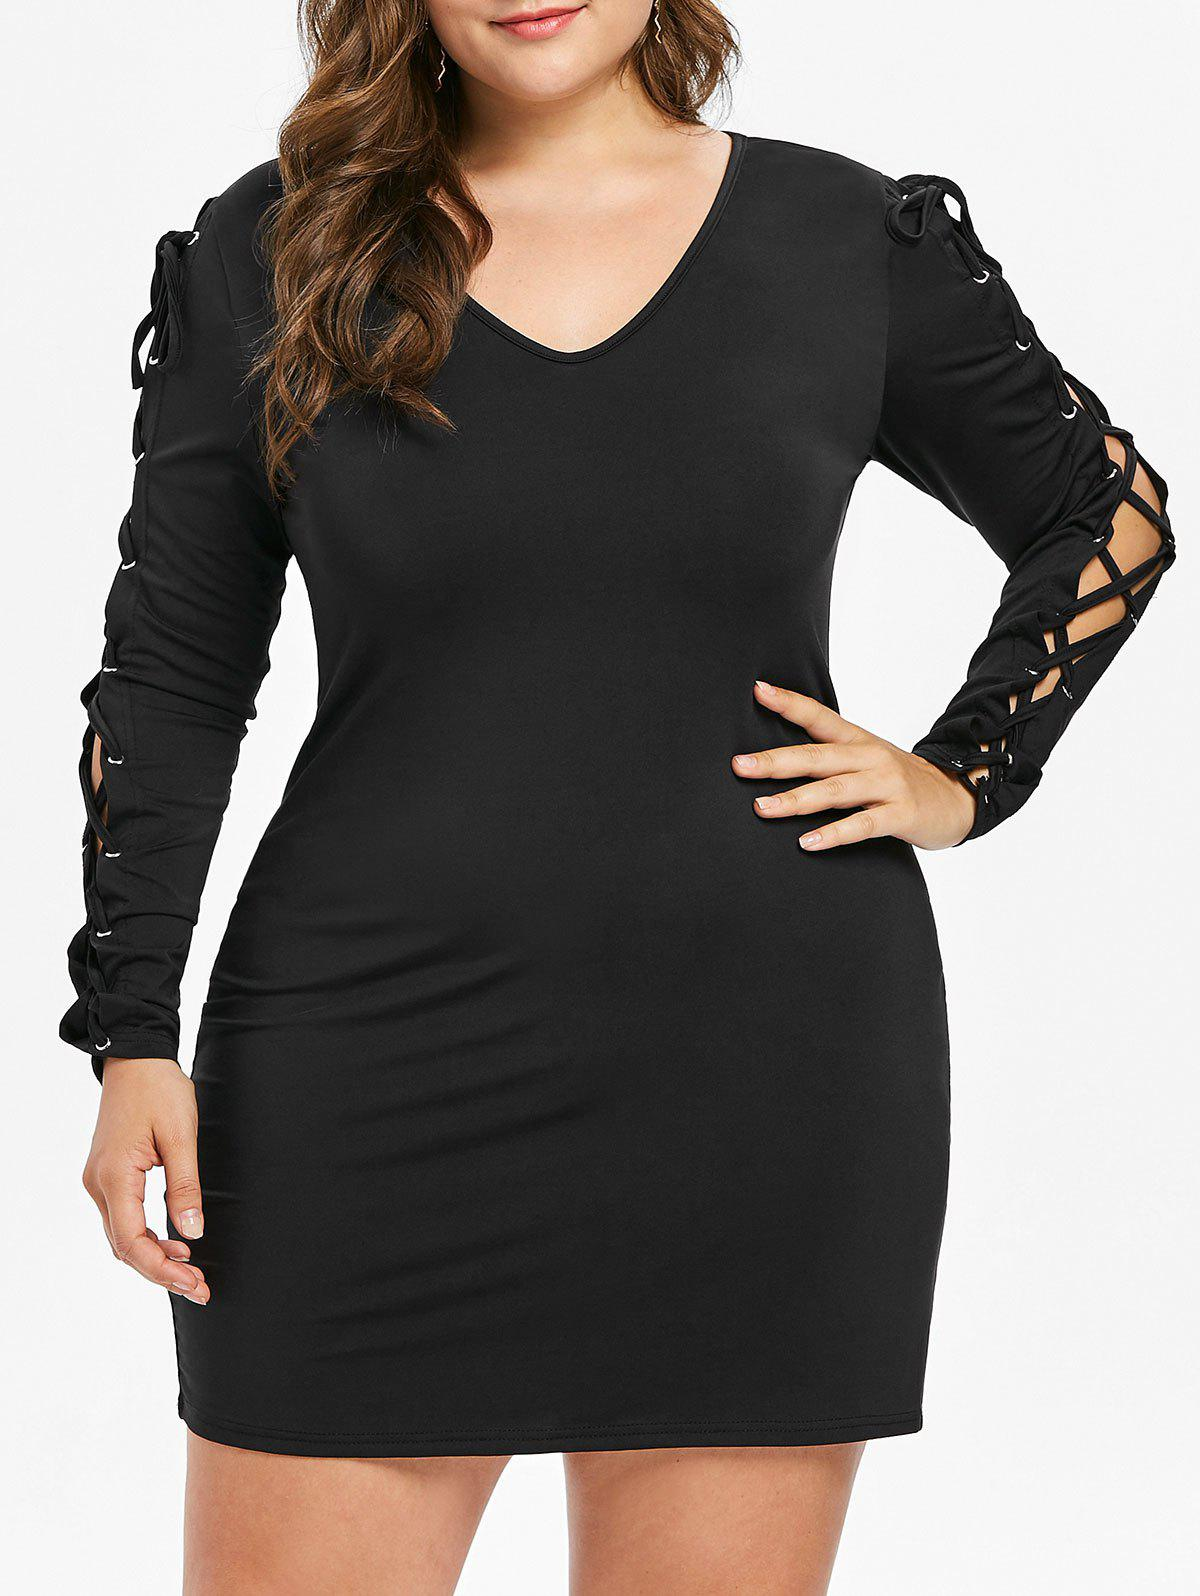 Lace Up Long Sleeve Plus Size Dress - BLACK L